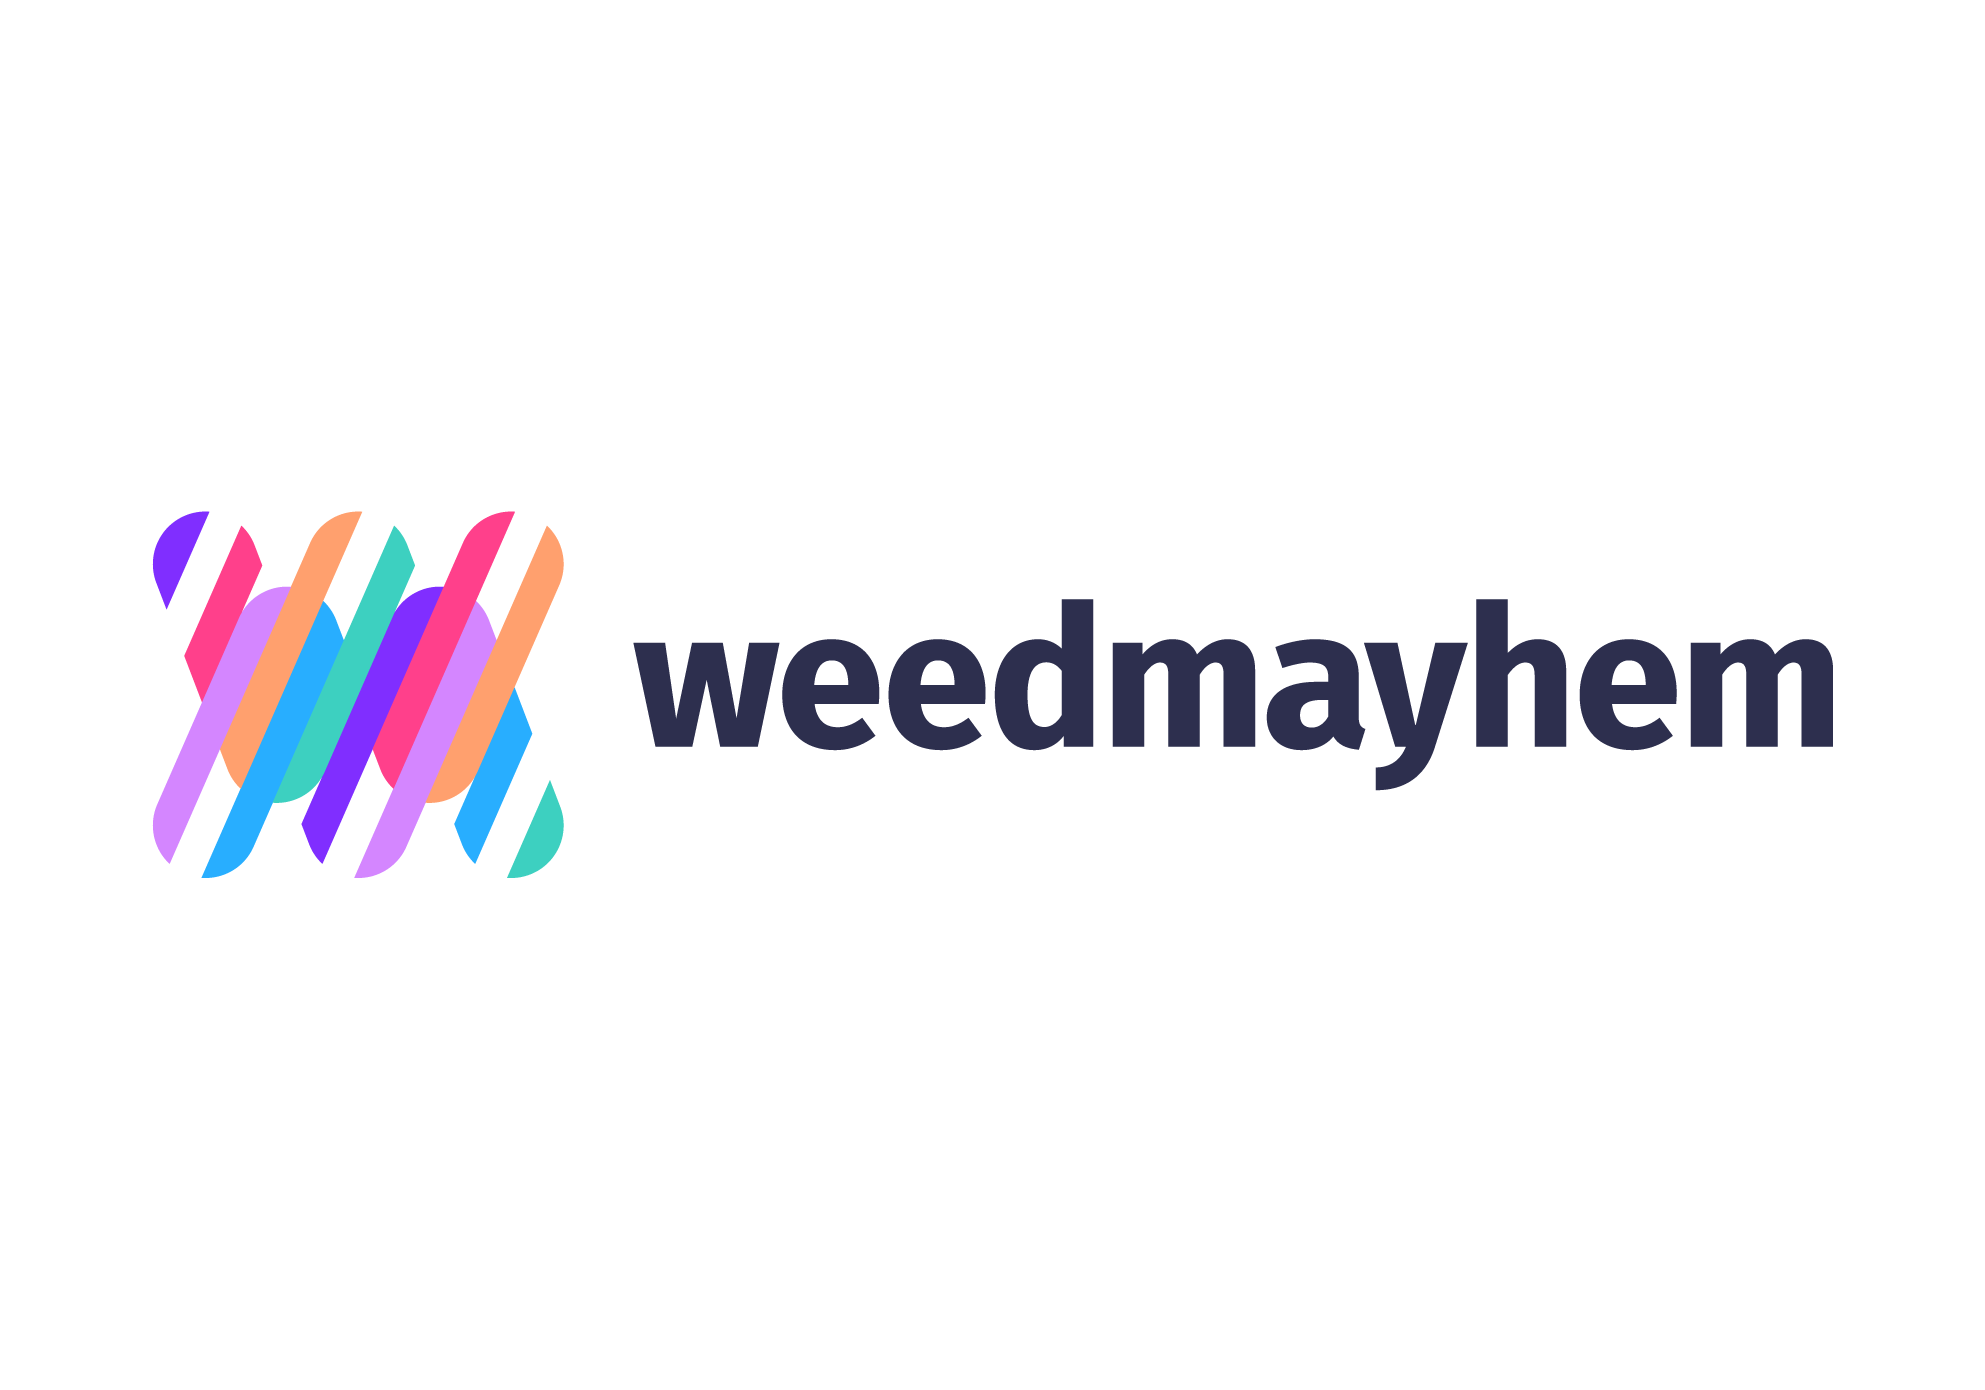 Weedmayhem Hosts Huge and Historic Party to Celebrate Online Platform Launch at the Greek Theatre 7